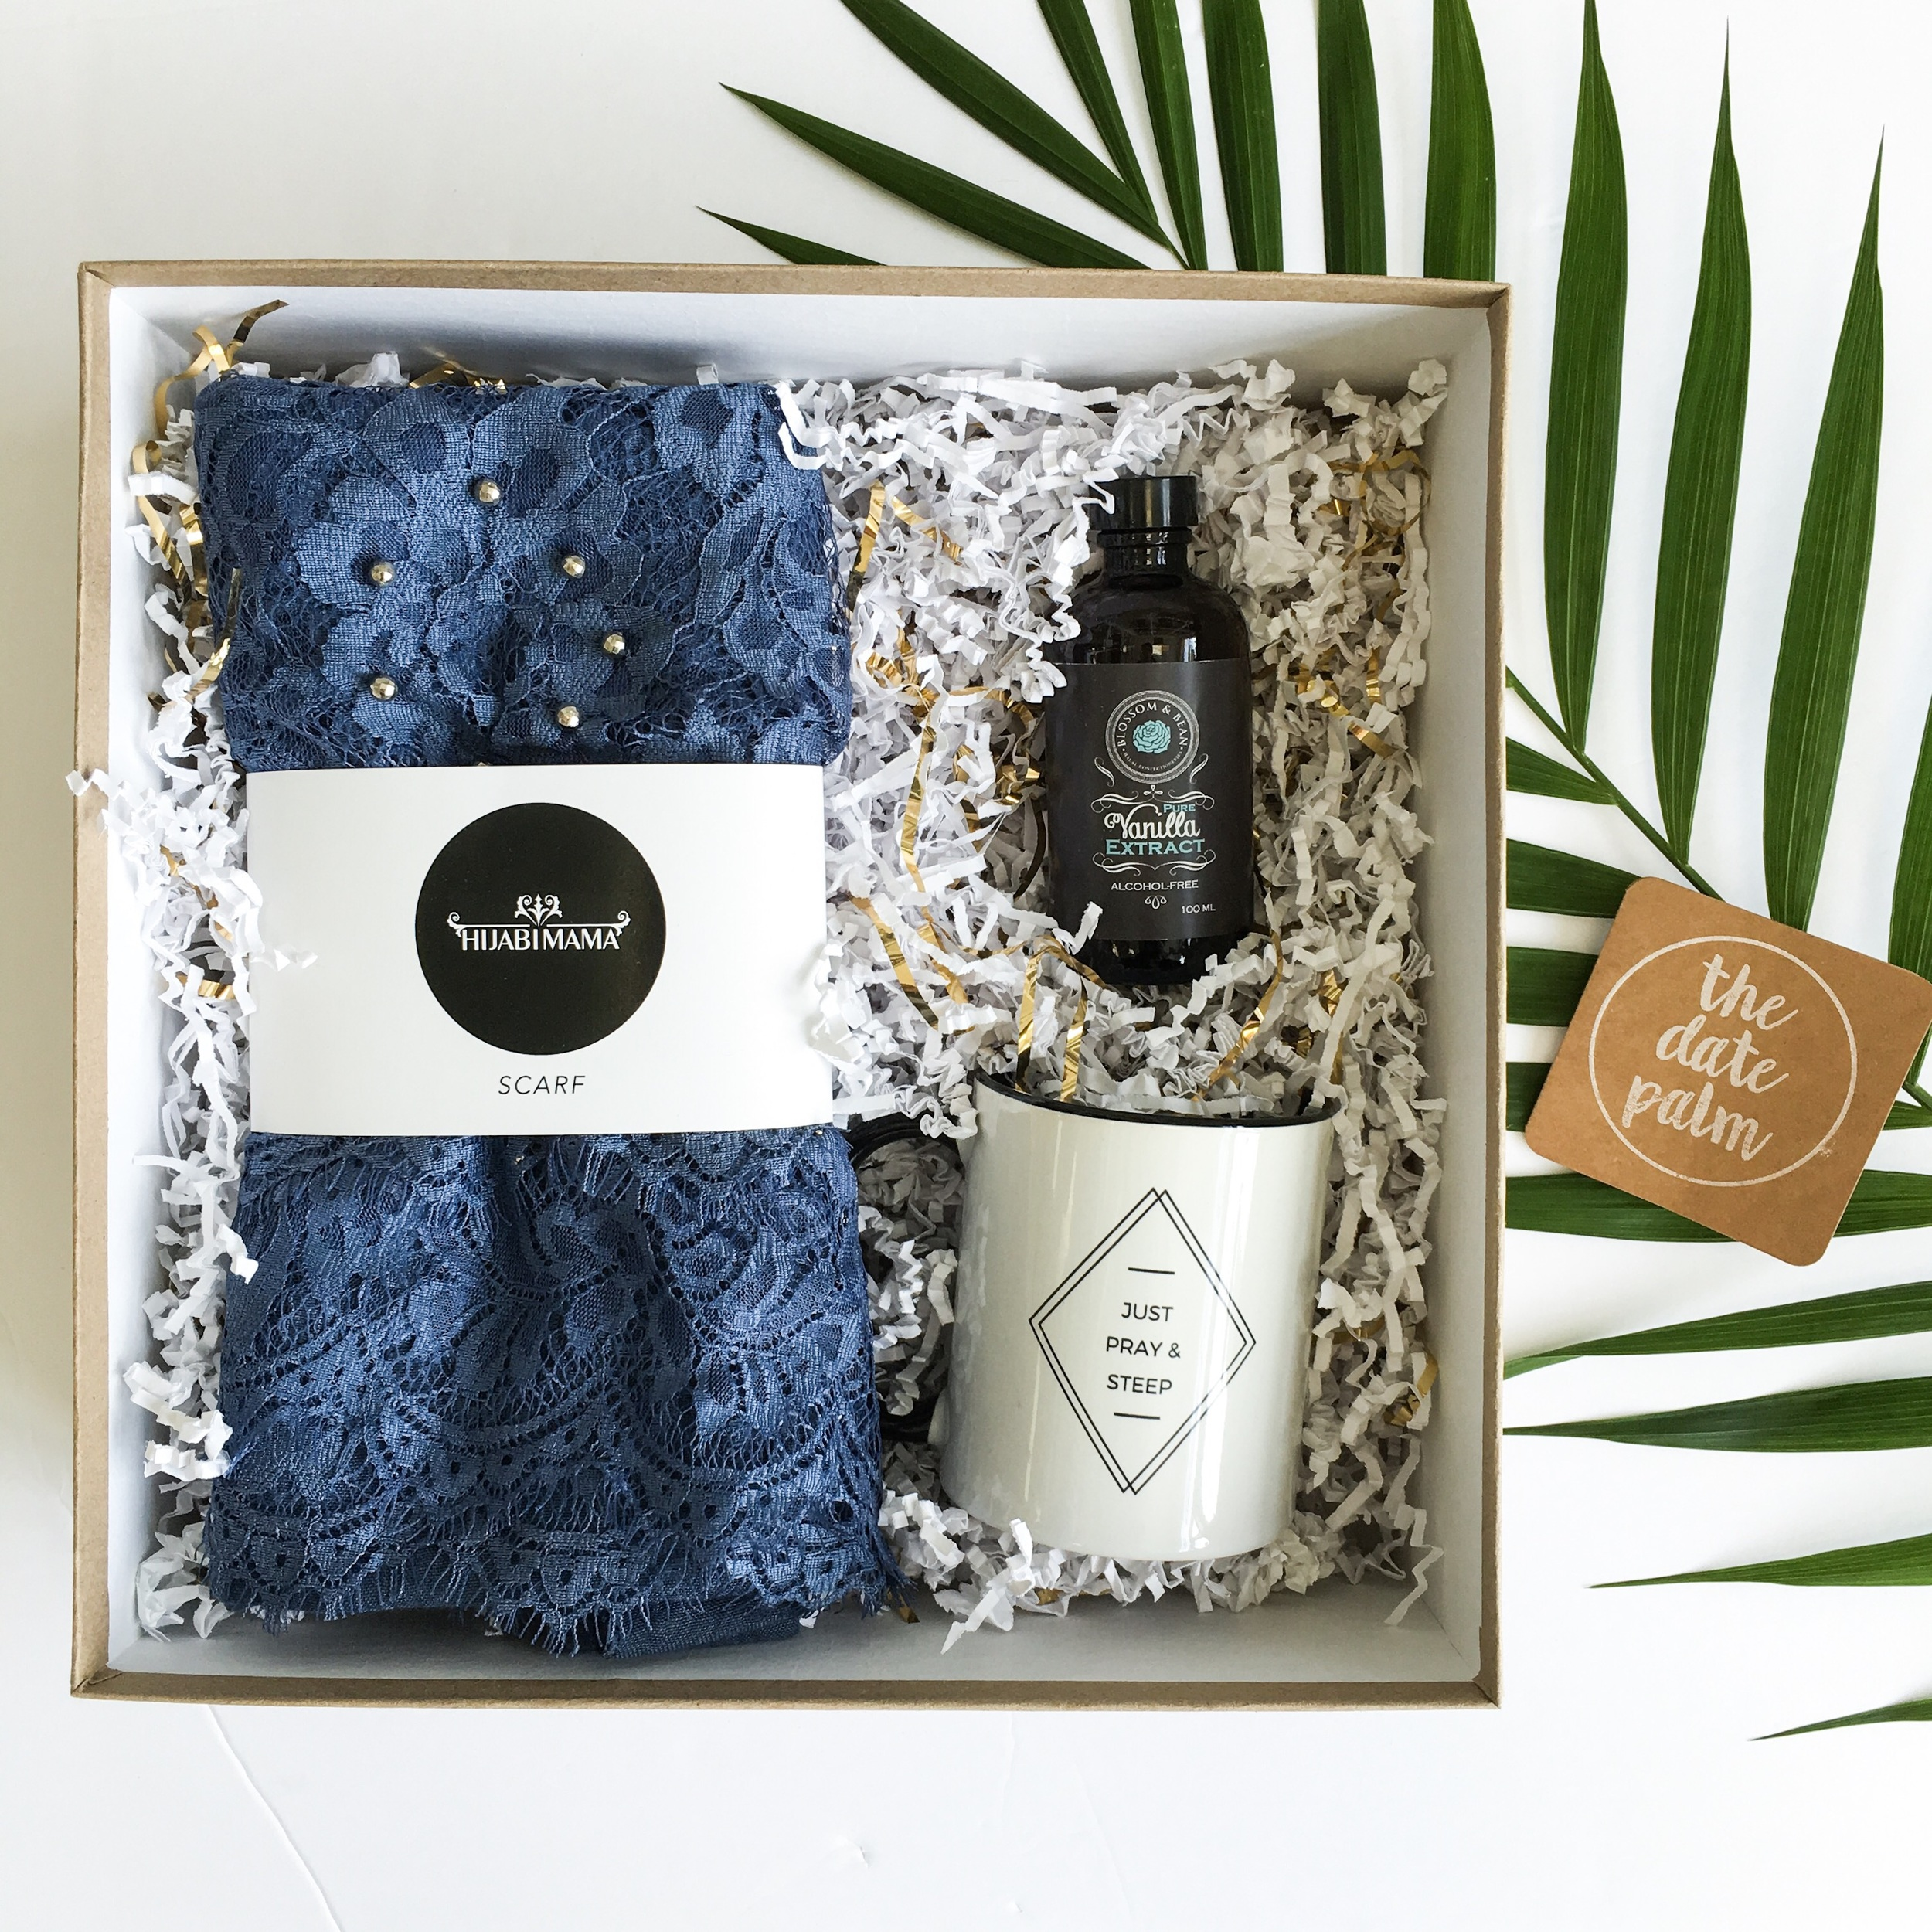 The DP Mother' Day Gift Box contains a Hijabimama lace trim hijab, a bottle of halal Vanilla Extract from Blossom & Bean and a Just Pray & Steep mug from Eastern Toybox. A complimentary Date Palm notecard is also included. Please feel free to email or call us ahead a time to order a gift box as inventory is limited. Hello@thedatepalm.com / 905-554-8000